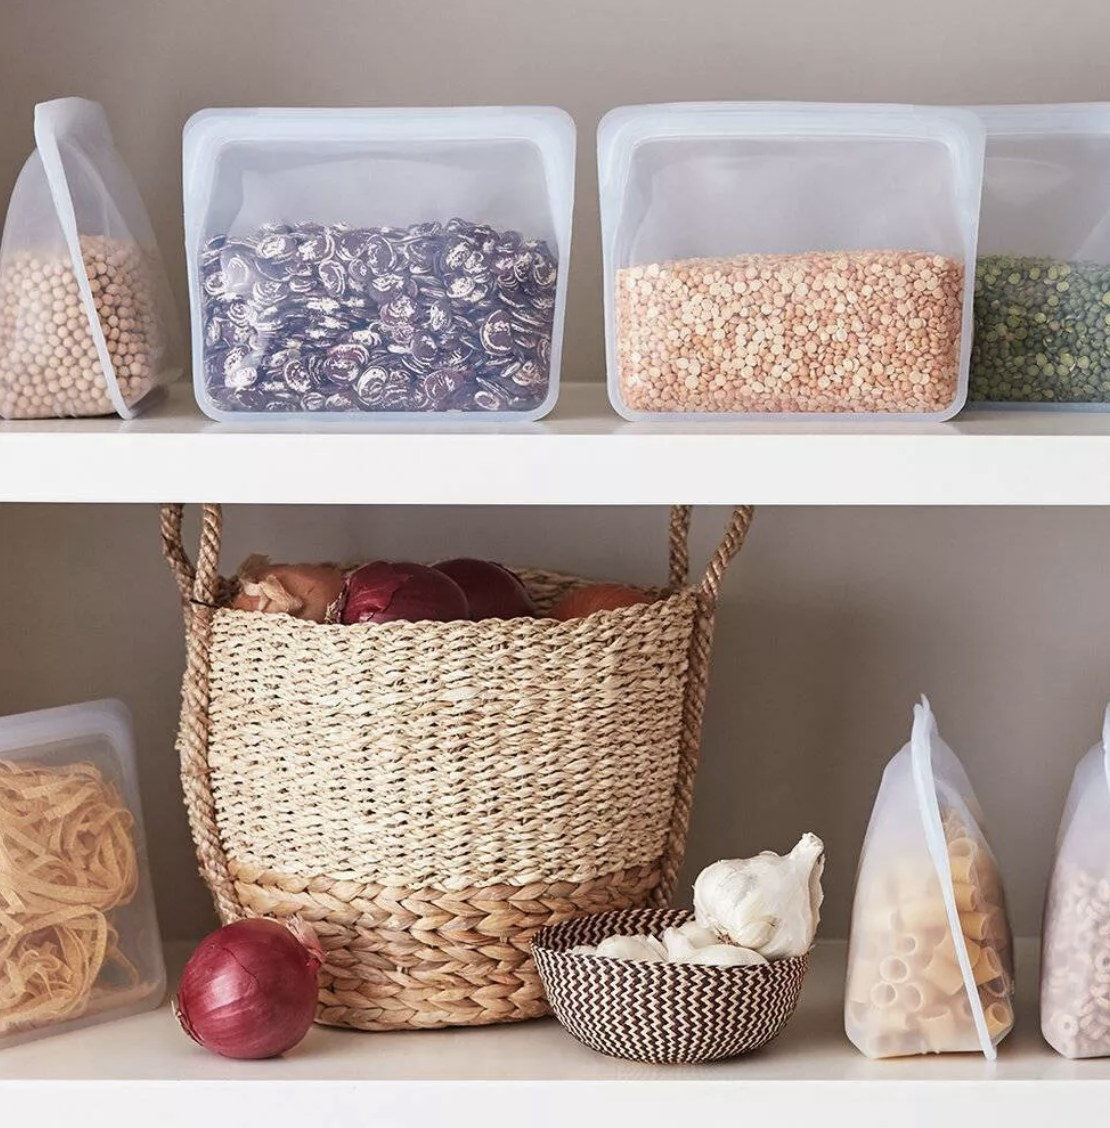 the storage bags in a pantry with different foods in them